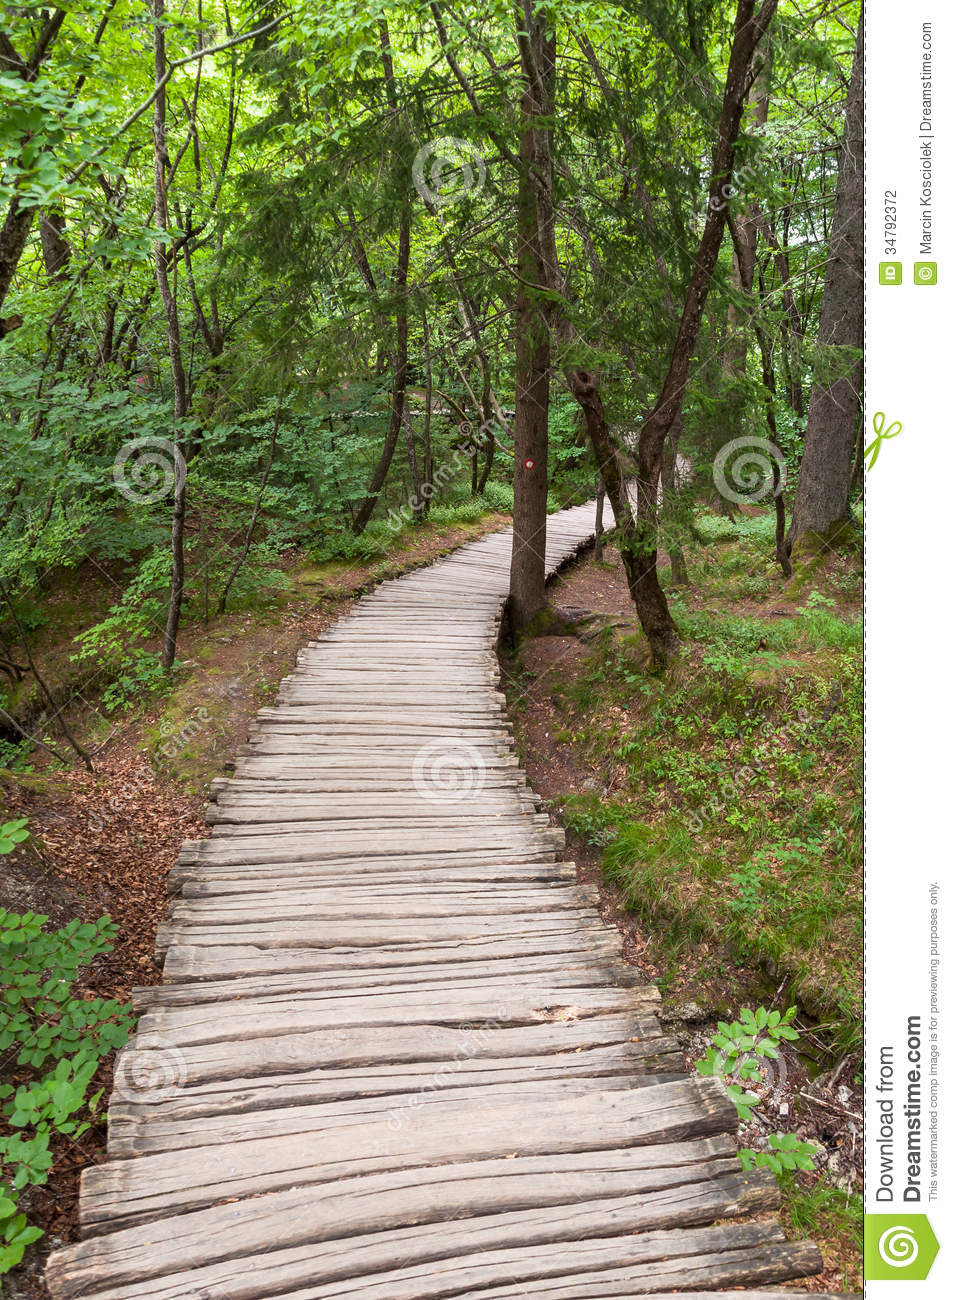 Backyard Forest Management : Wooden footpath in a forest, Plitvice Lakes National Park